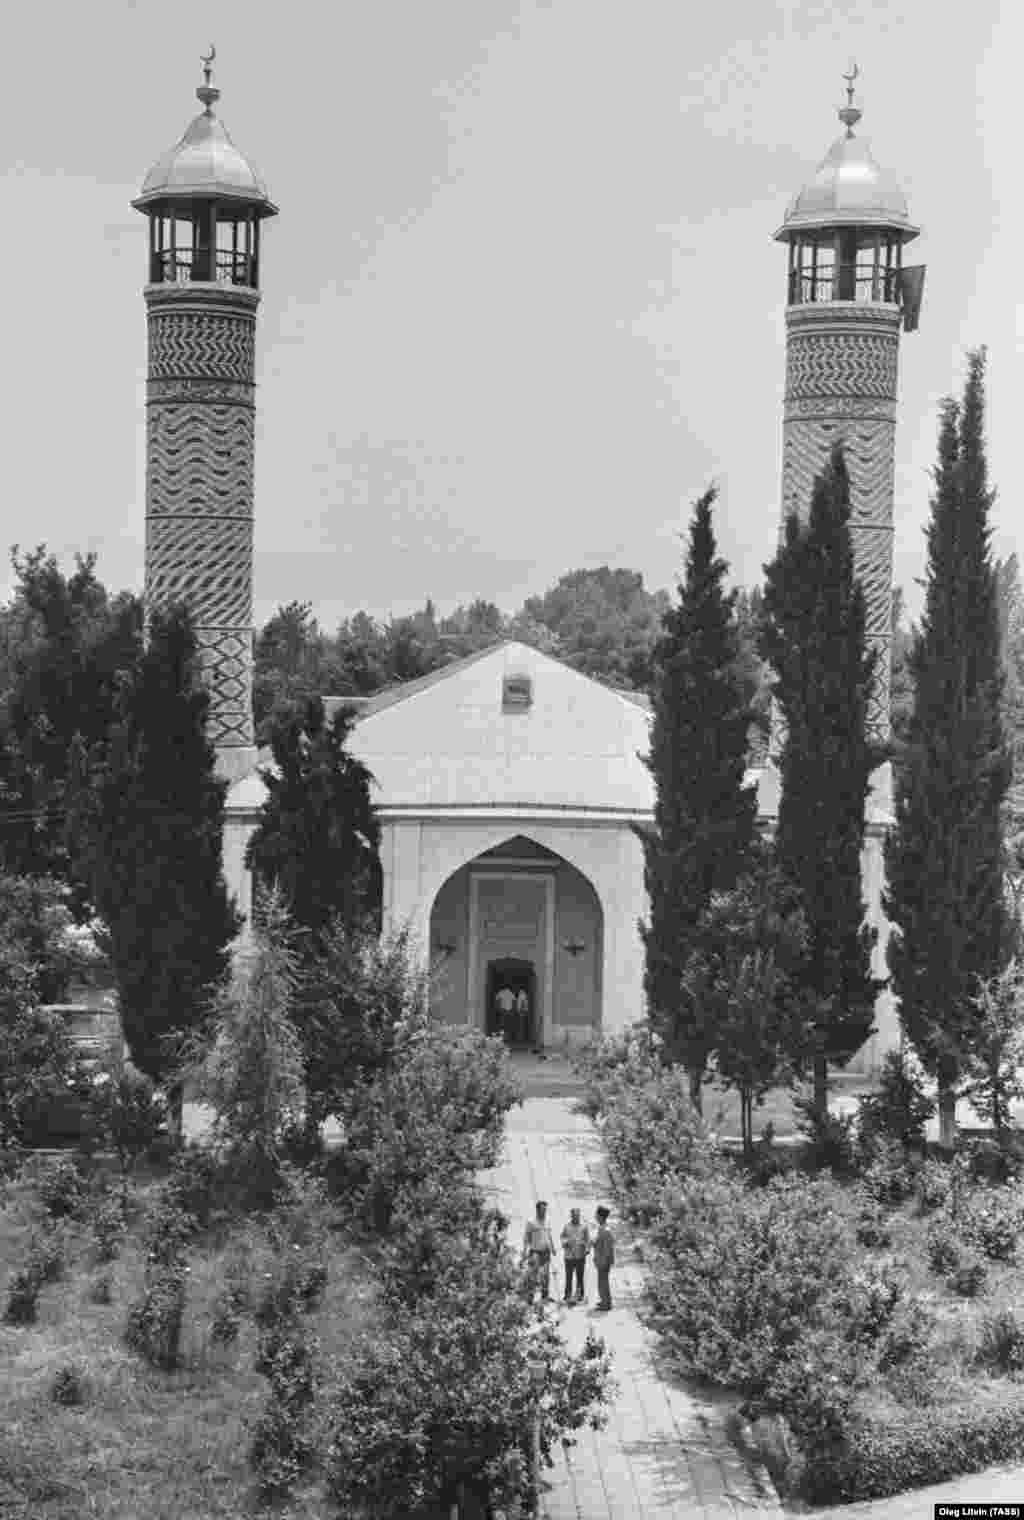 A rare archival photo of the central mosque of Agdam in 1990. Armenians did not inhabit the city after the Azerbaijanis fled and it lay in ruins.